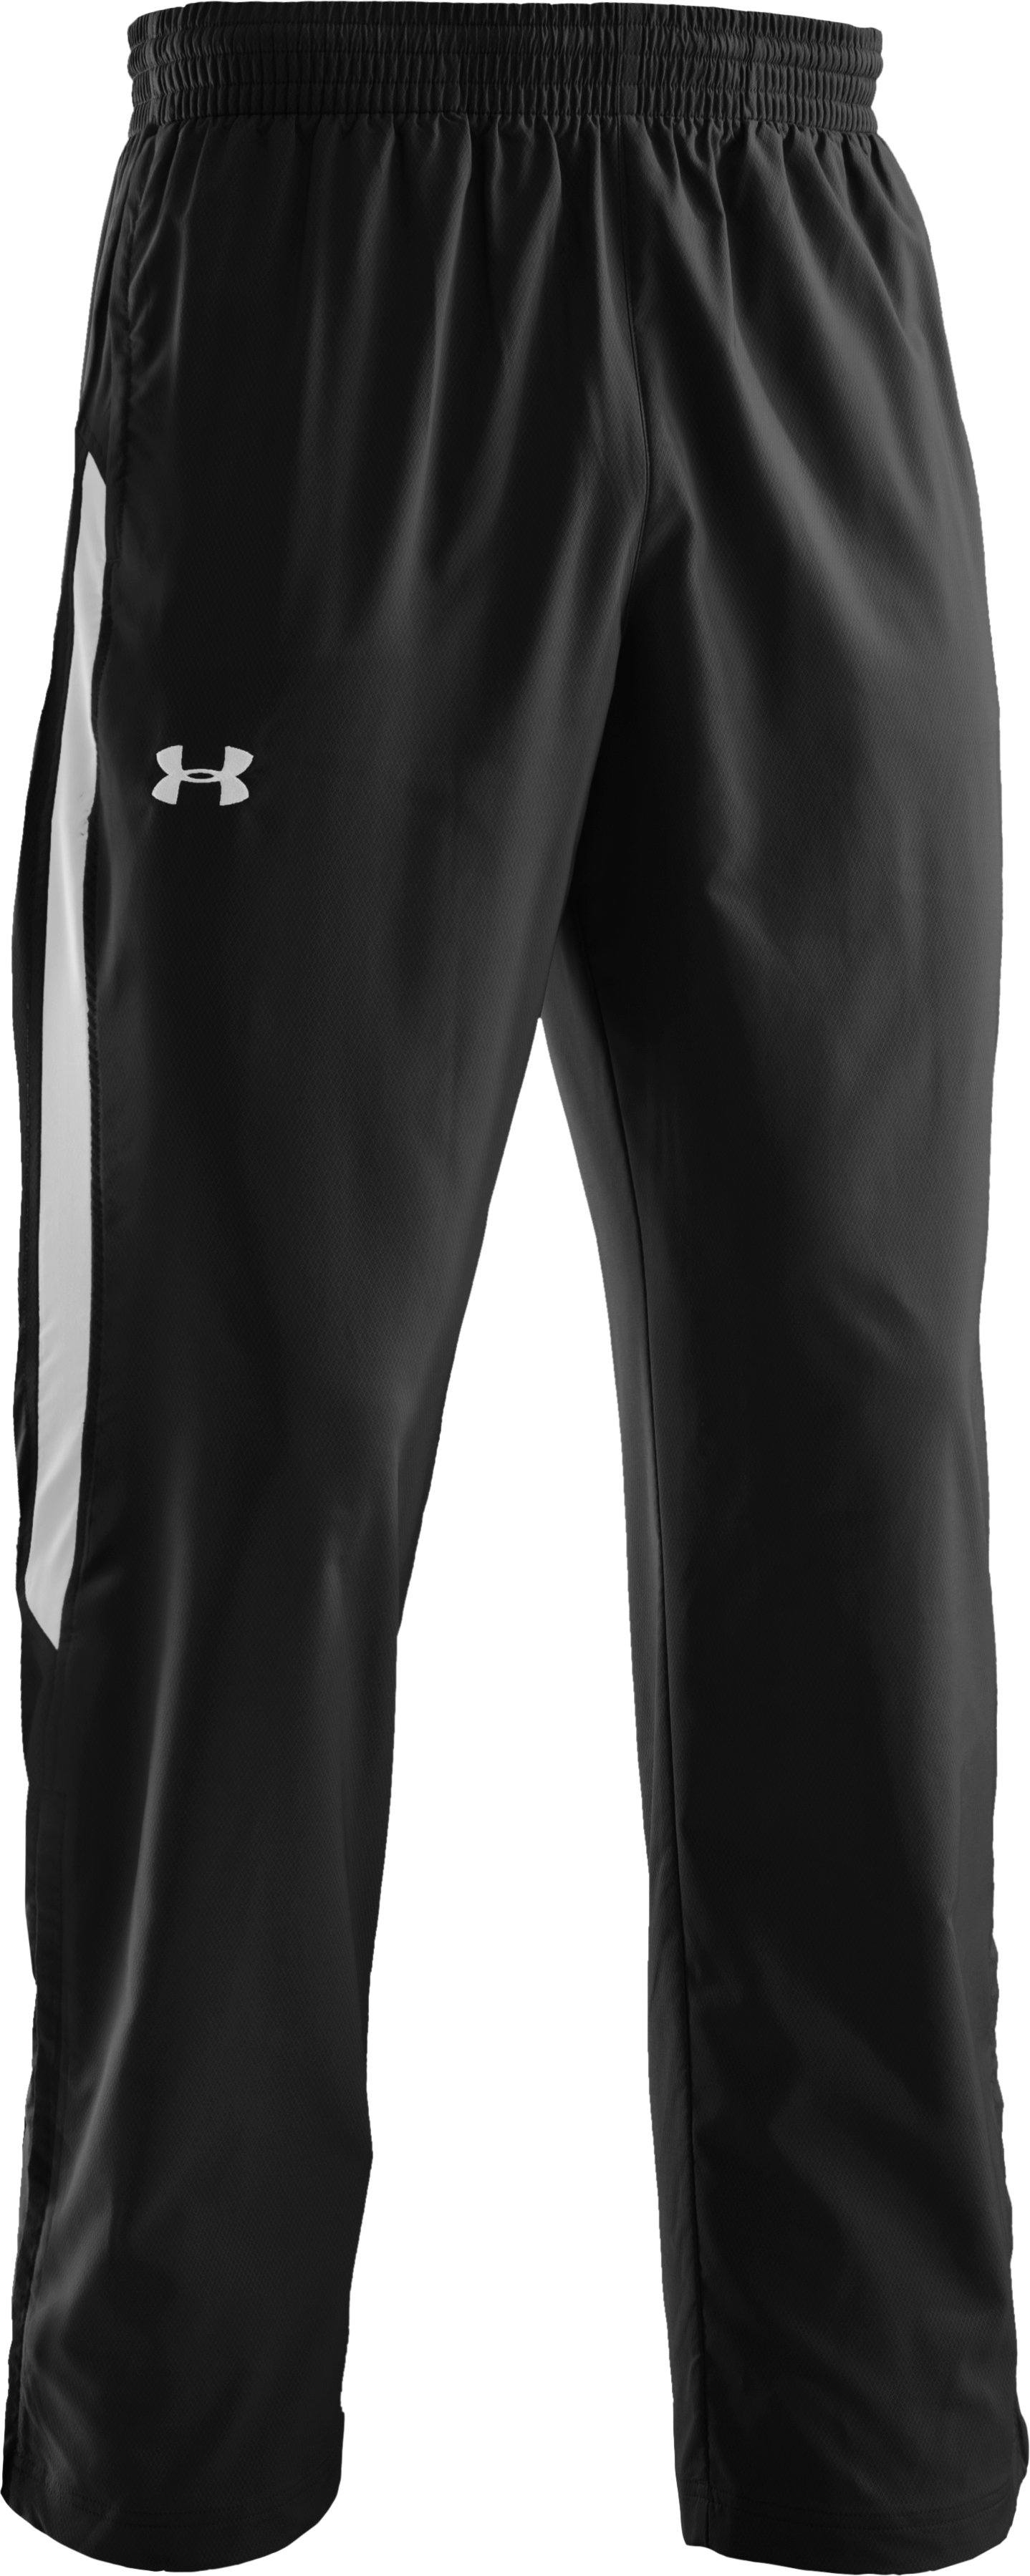 "Men's Undeniable II 32"" Warm-Up Pants, Black"